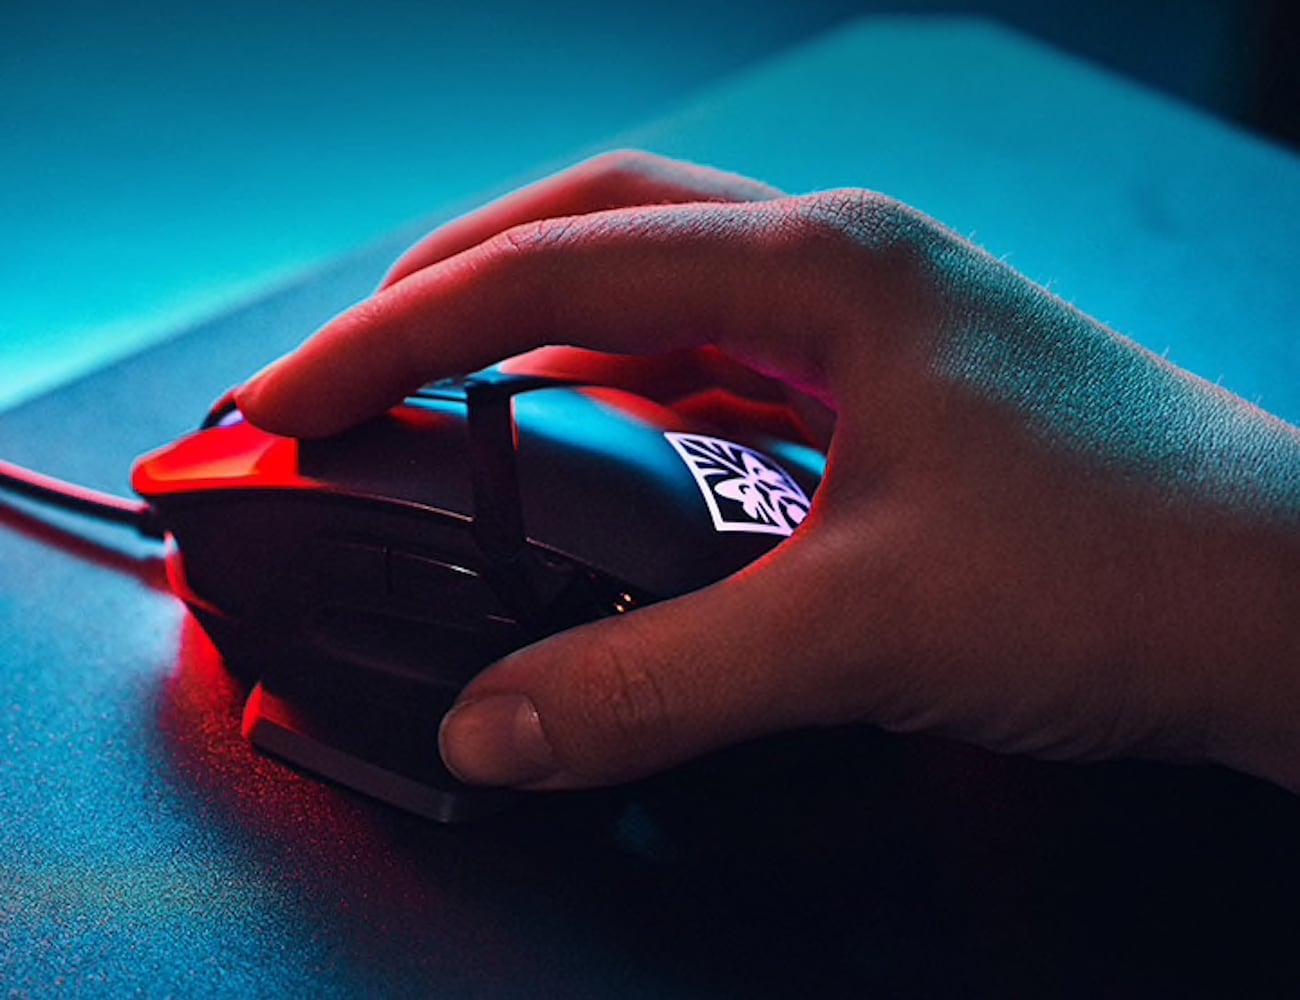 HP OMEN Reactor Optical-Mechanical Gaming Mouse